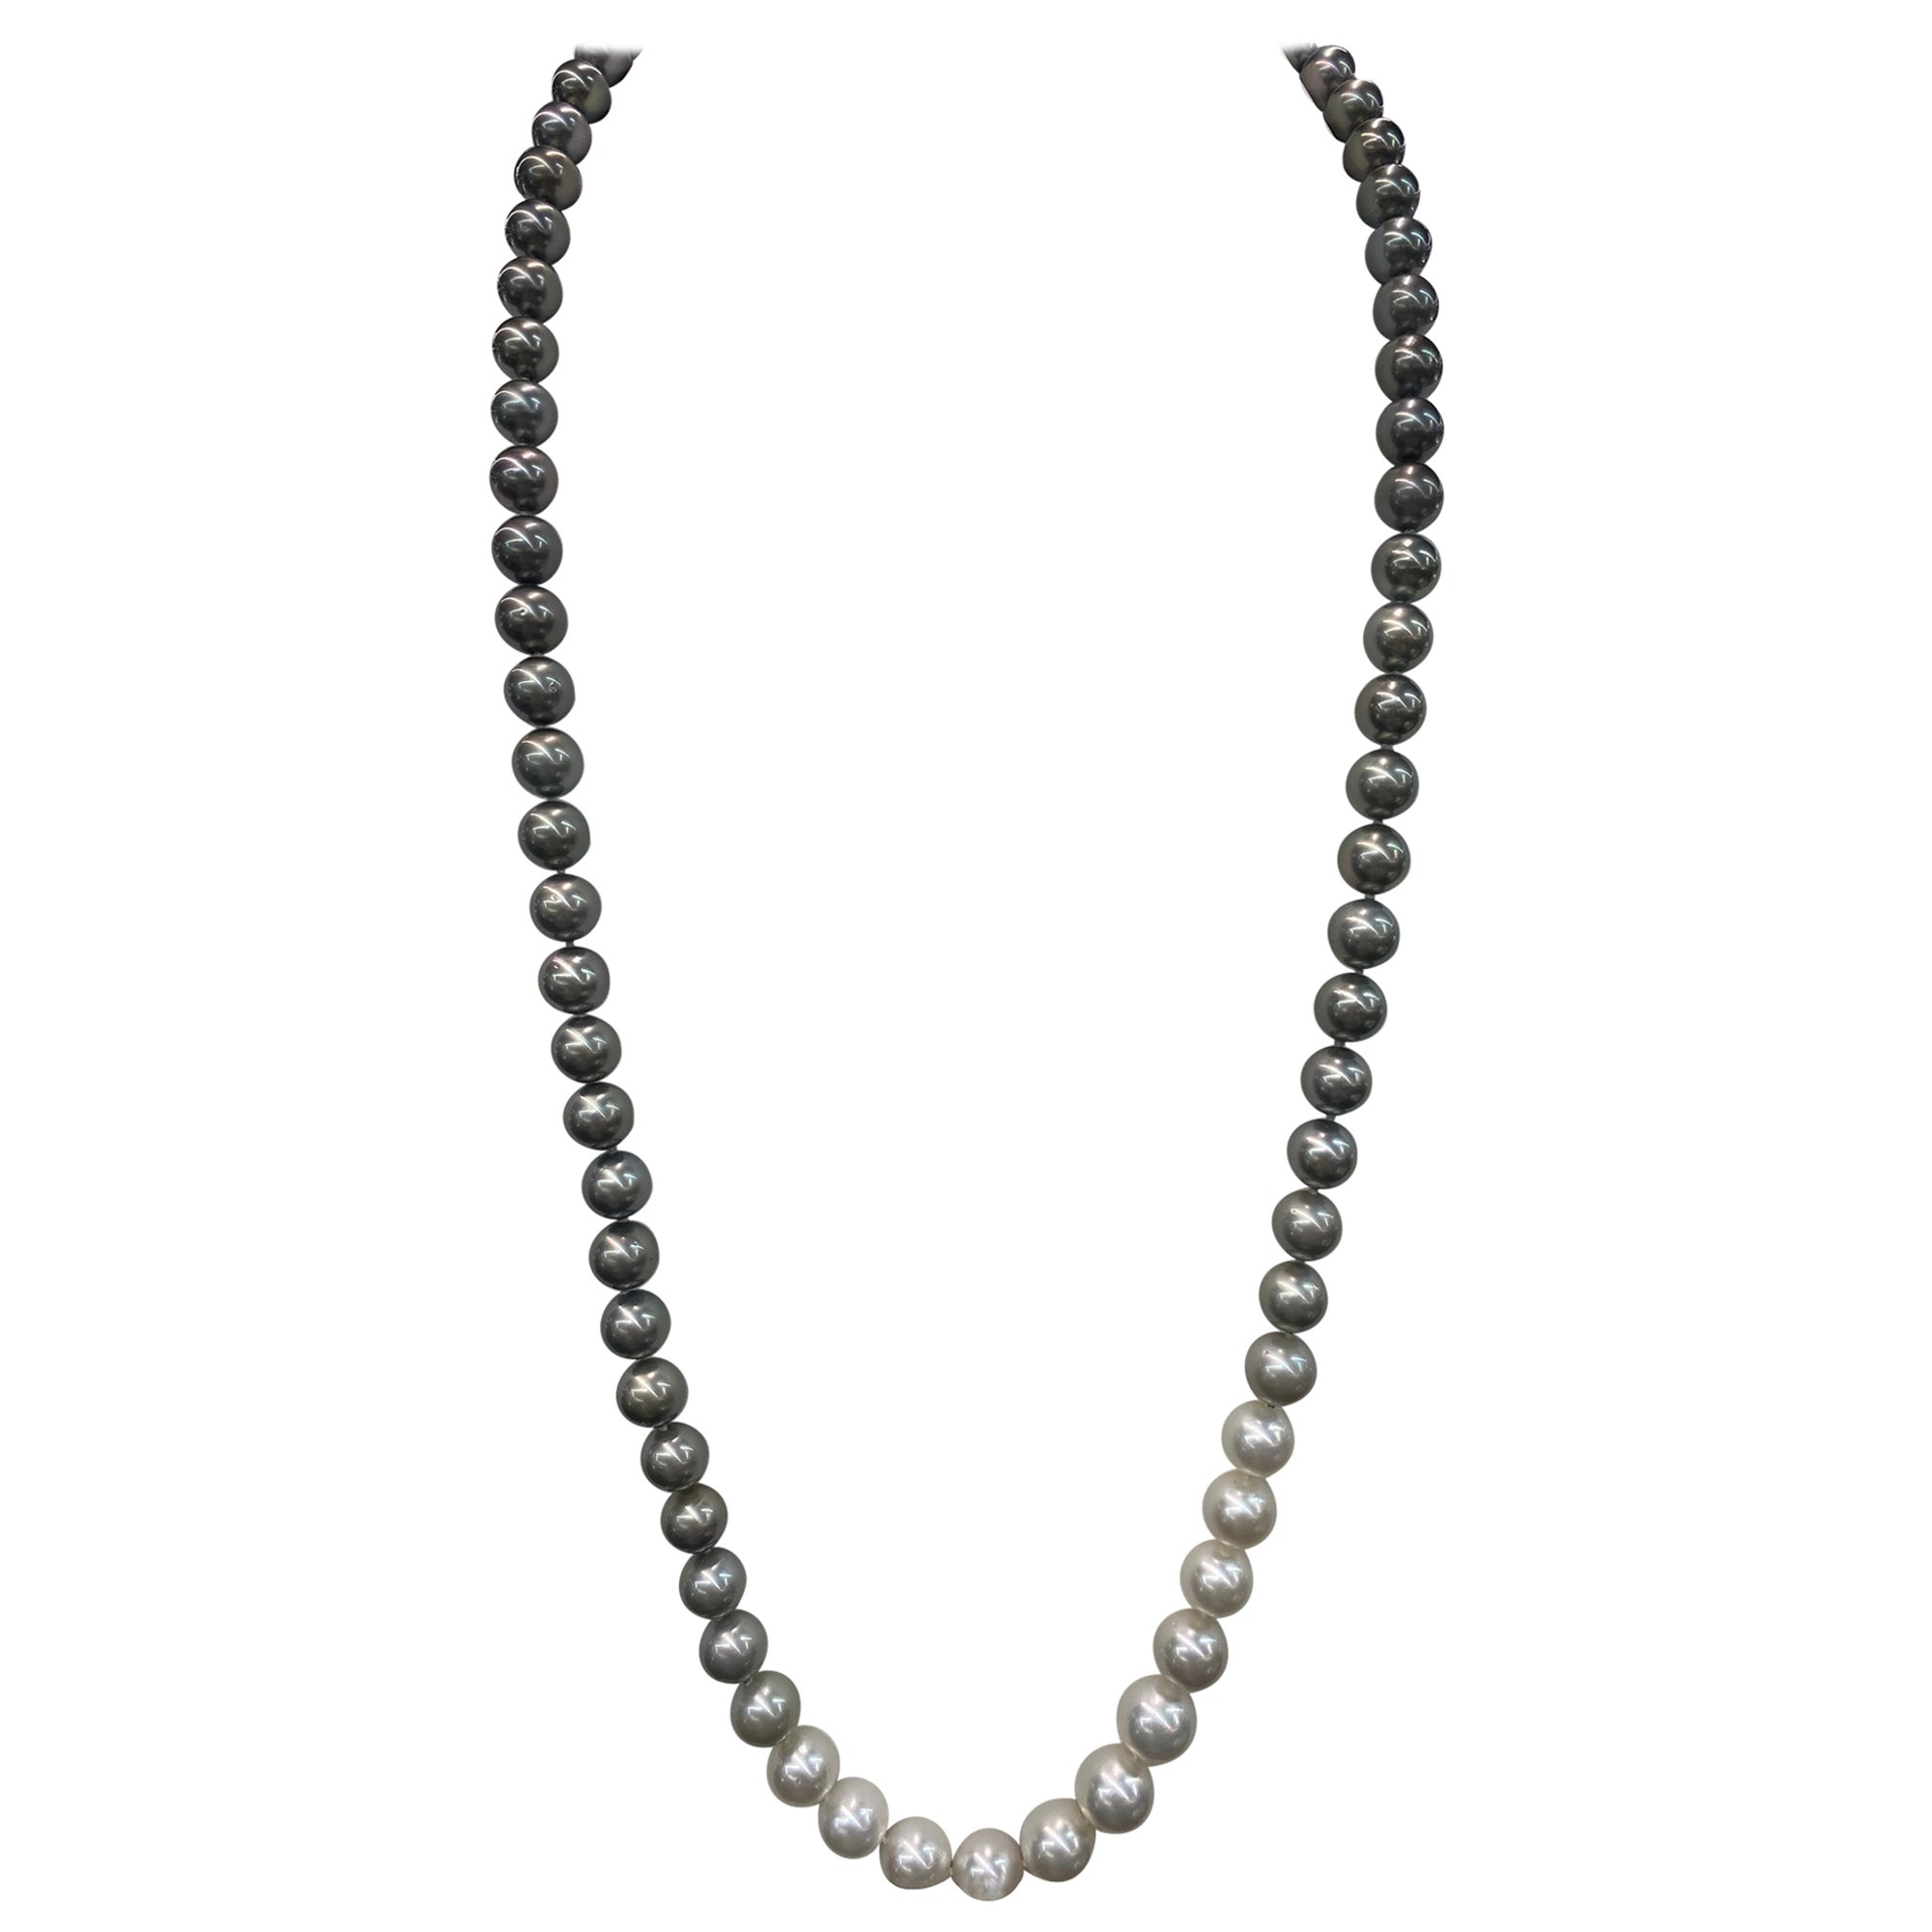 HARBOR D. Opera Ombre South Sea and Tahitian Pearl Necklace Diamond Clasp